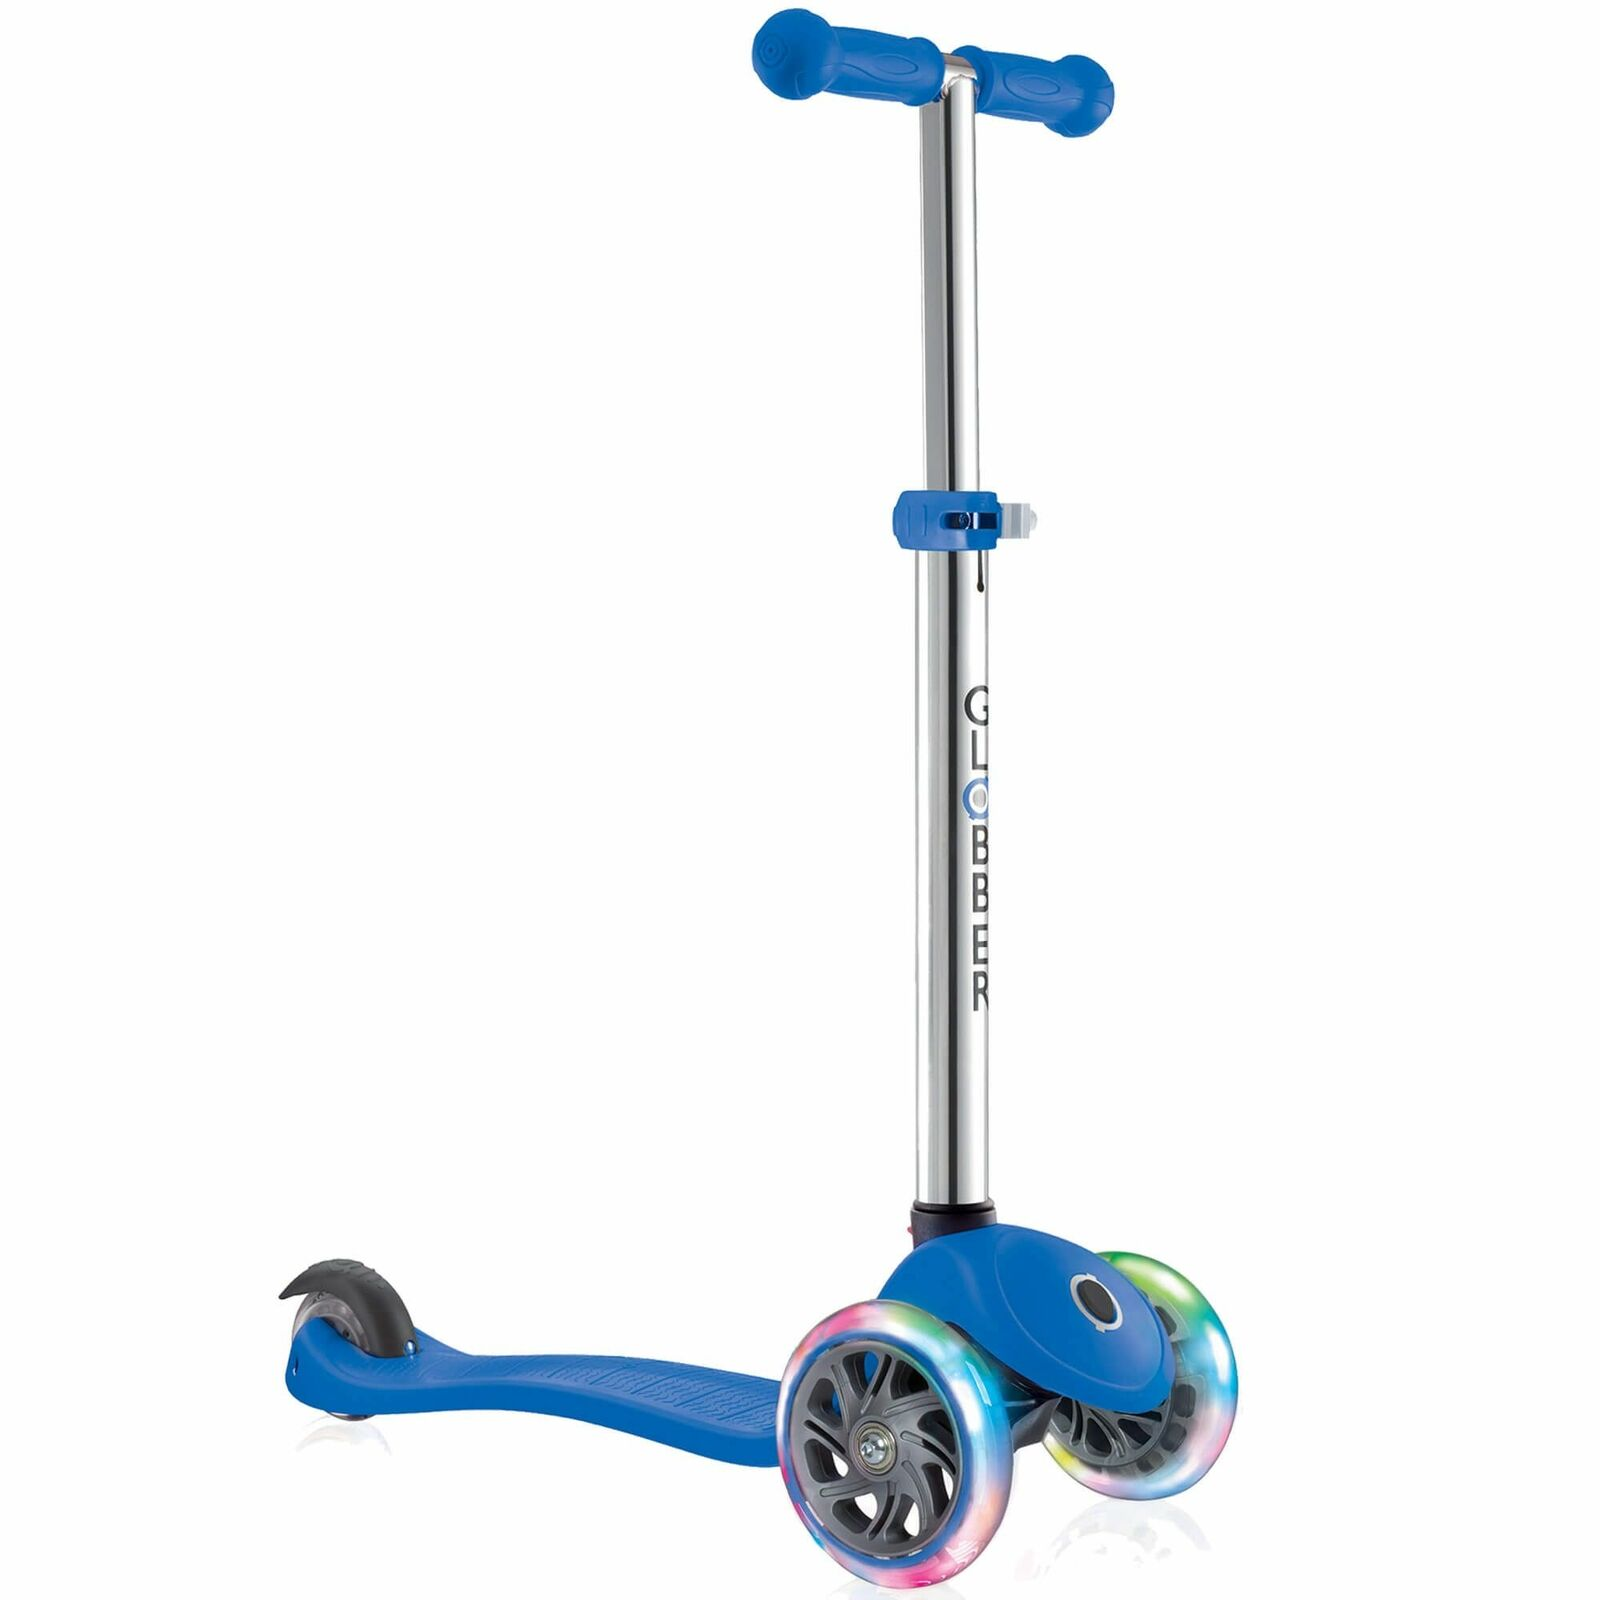 Globber Primo Luces Complete Patinete Incl.wheel Luces - Azul Marino